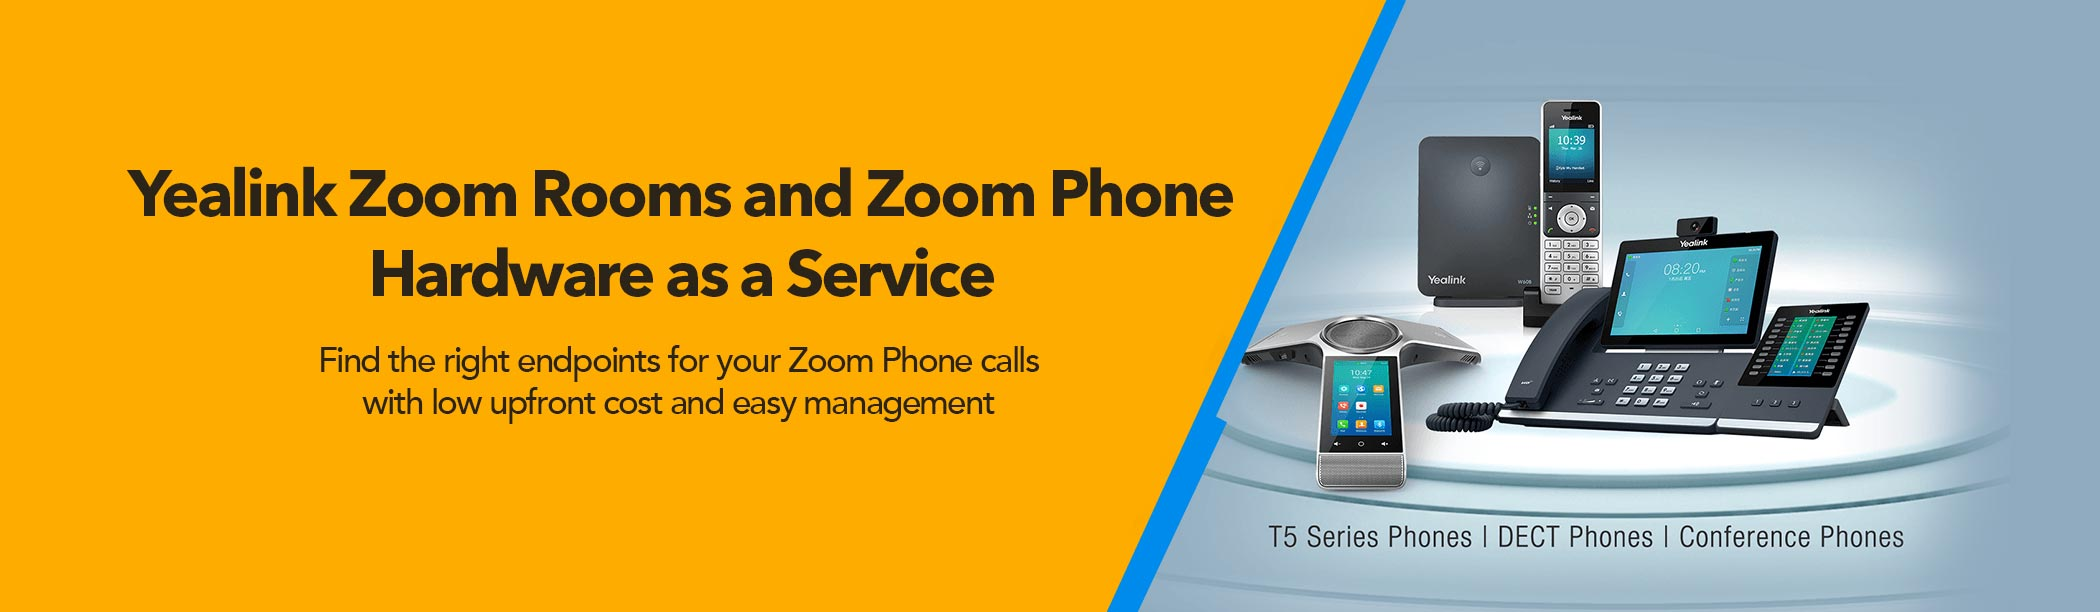 yealink-zoom-rooms-zoom-phone-hardware-as-a-service